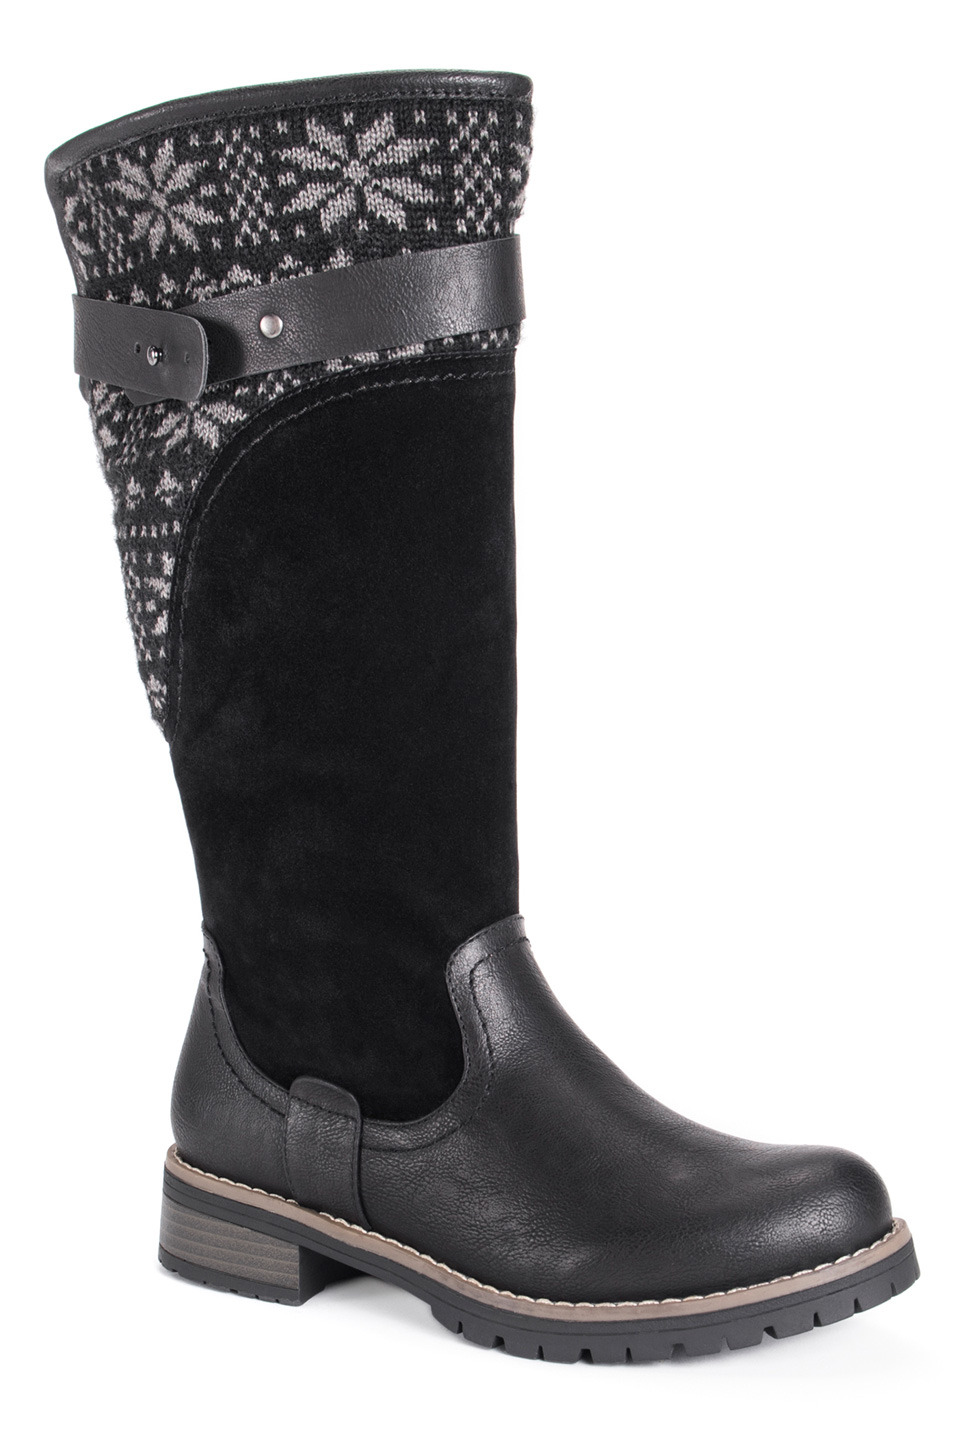 Women's Kamy Boots in Black and Gray